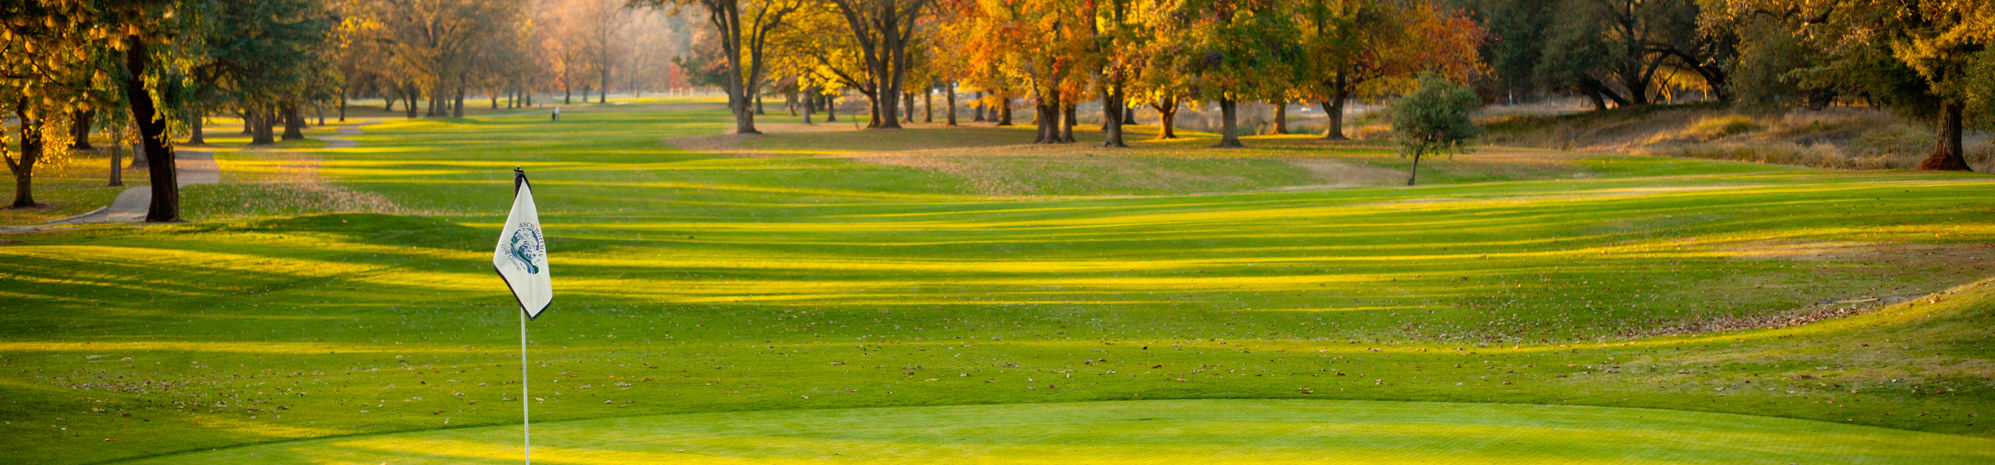 Ancil hoffman golf course cover picture